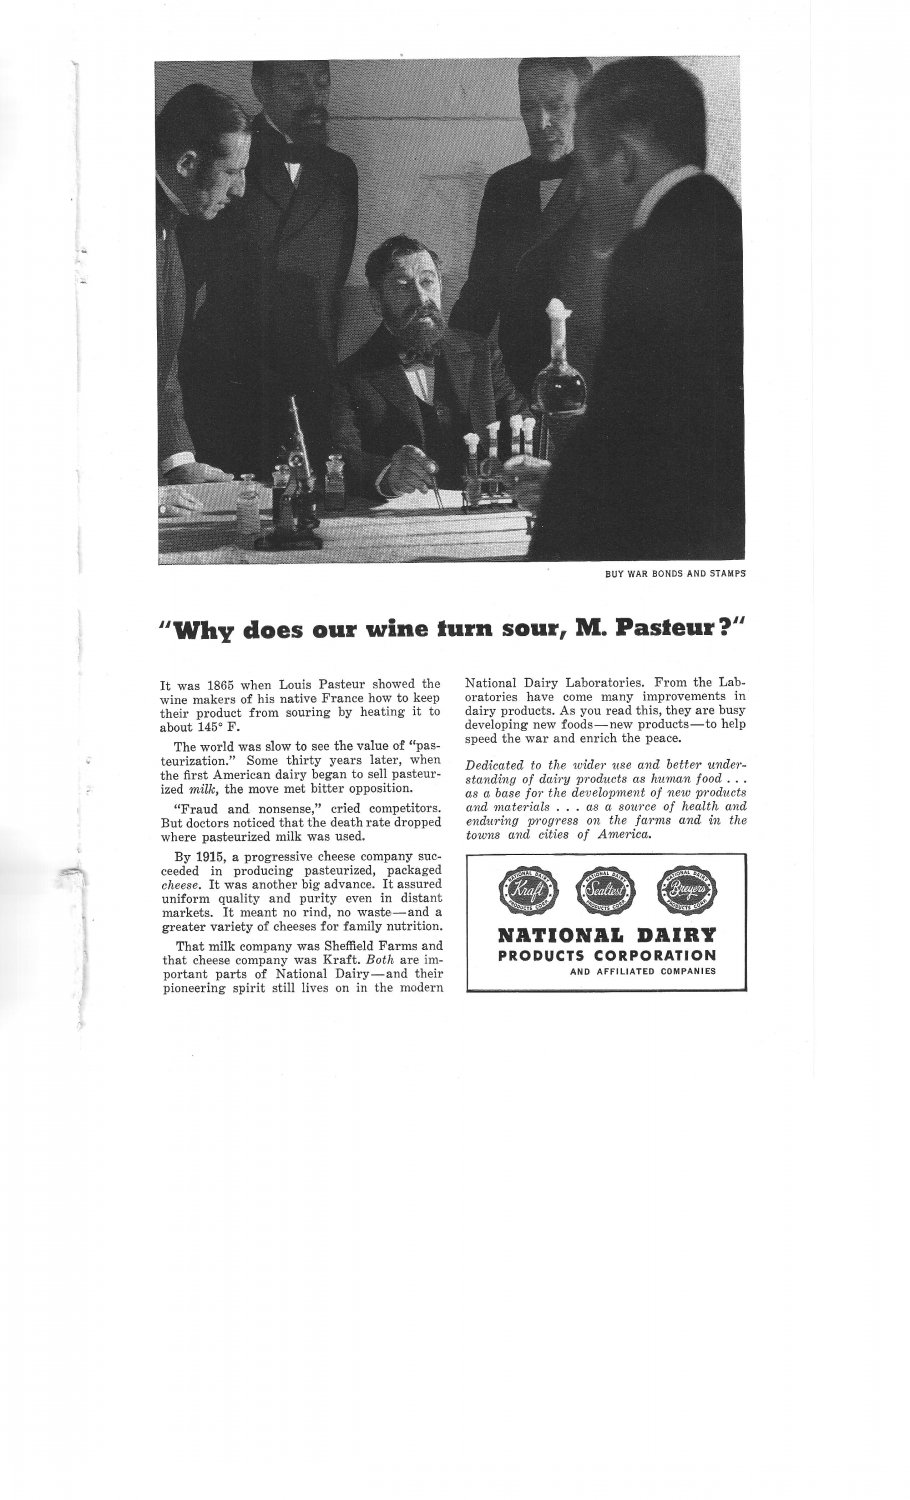 National Dairy Products Corp Pasteur Wine Turn Sour War Bonds Vintage Ad 1944